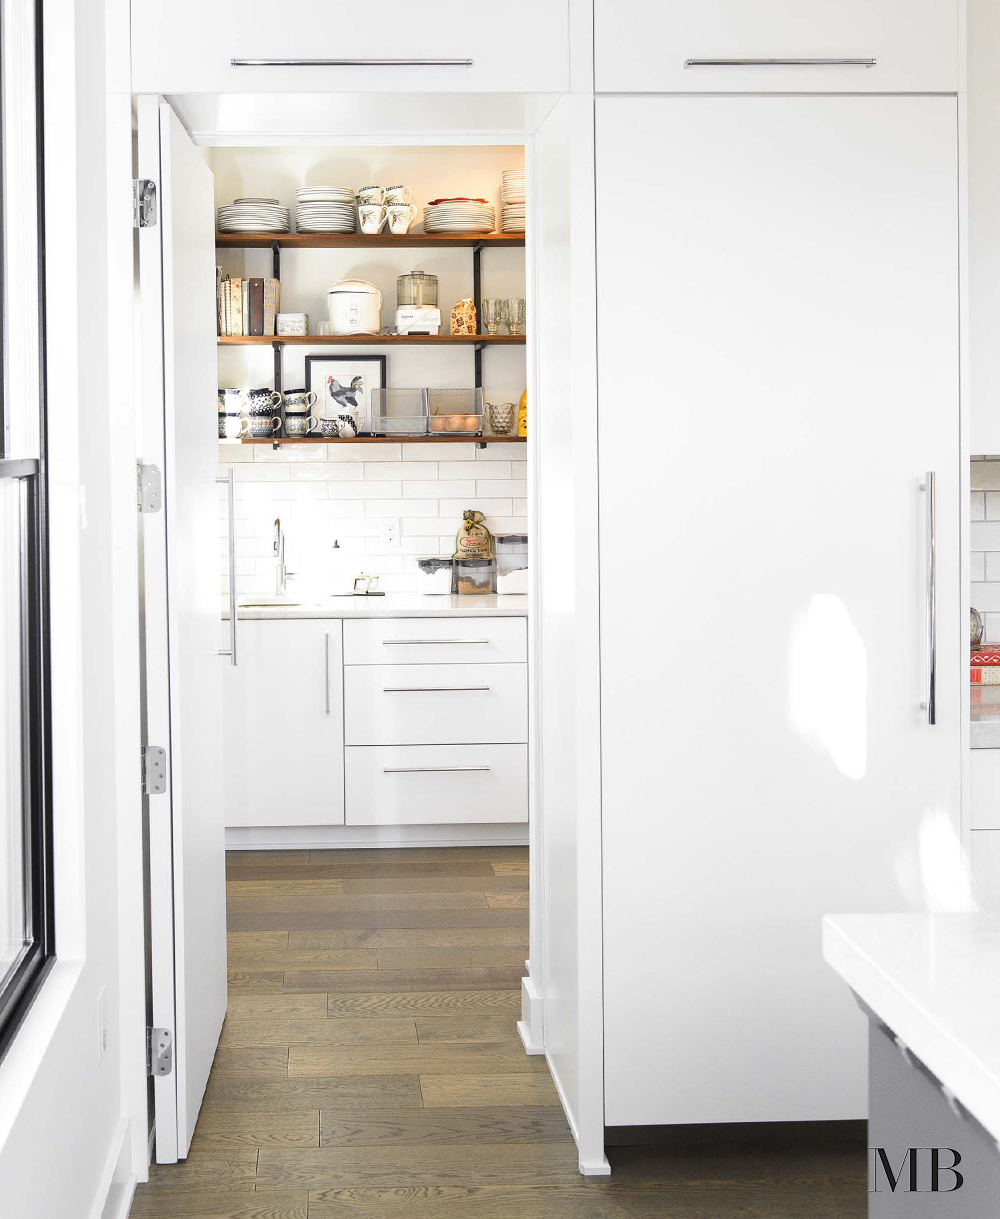 This sleek and modern kitchen remains as functional as a more traditional space by this walk-in hidden pantry. While the main space stays minimal and clear of too many objects, the pantry is full of useful kitchen objects at an arms length. This home was designed with a modern farmhouse style and we kept that going with subway tile and wooden shelves.